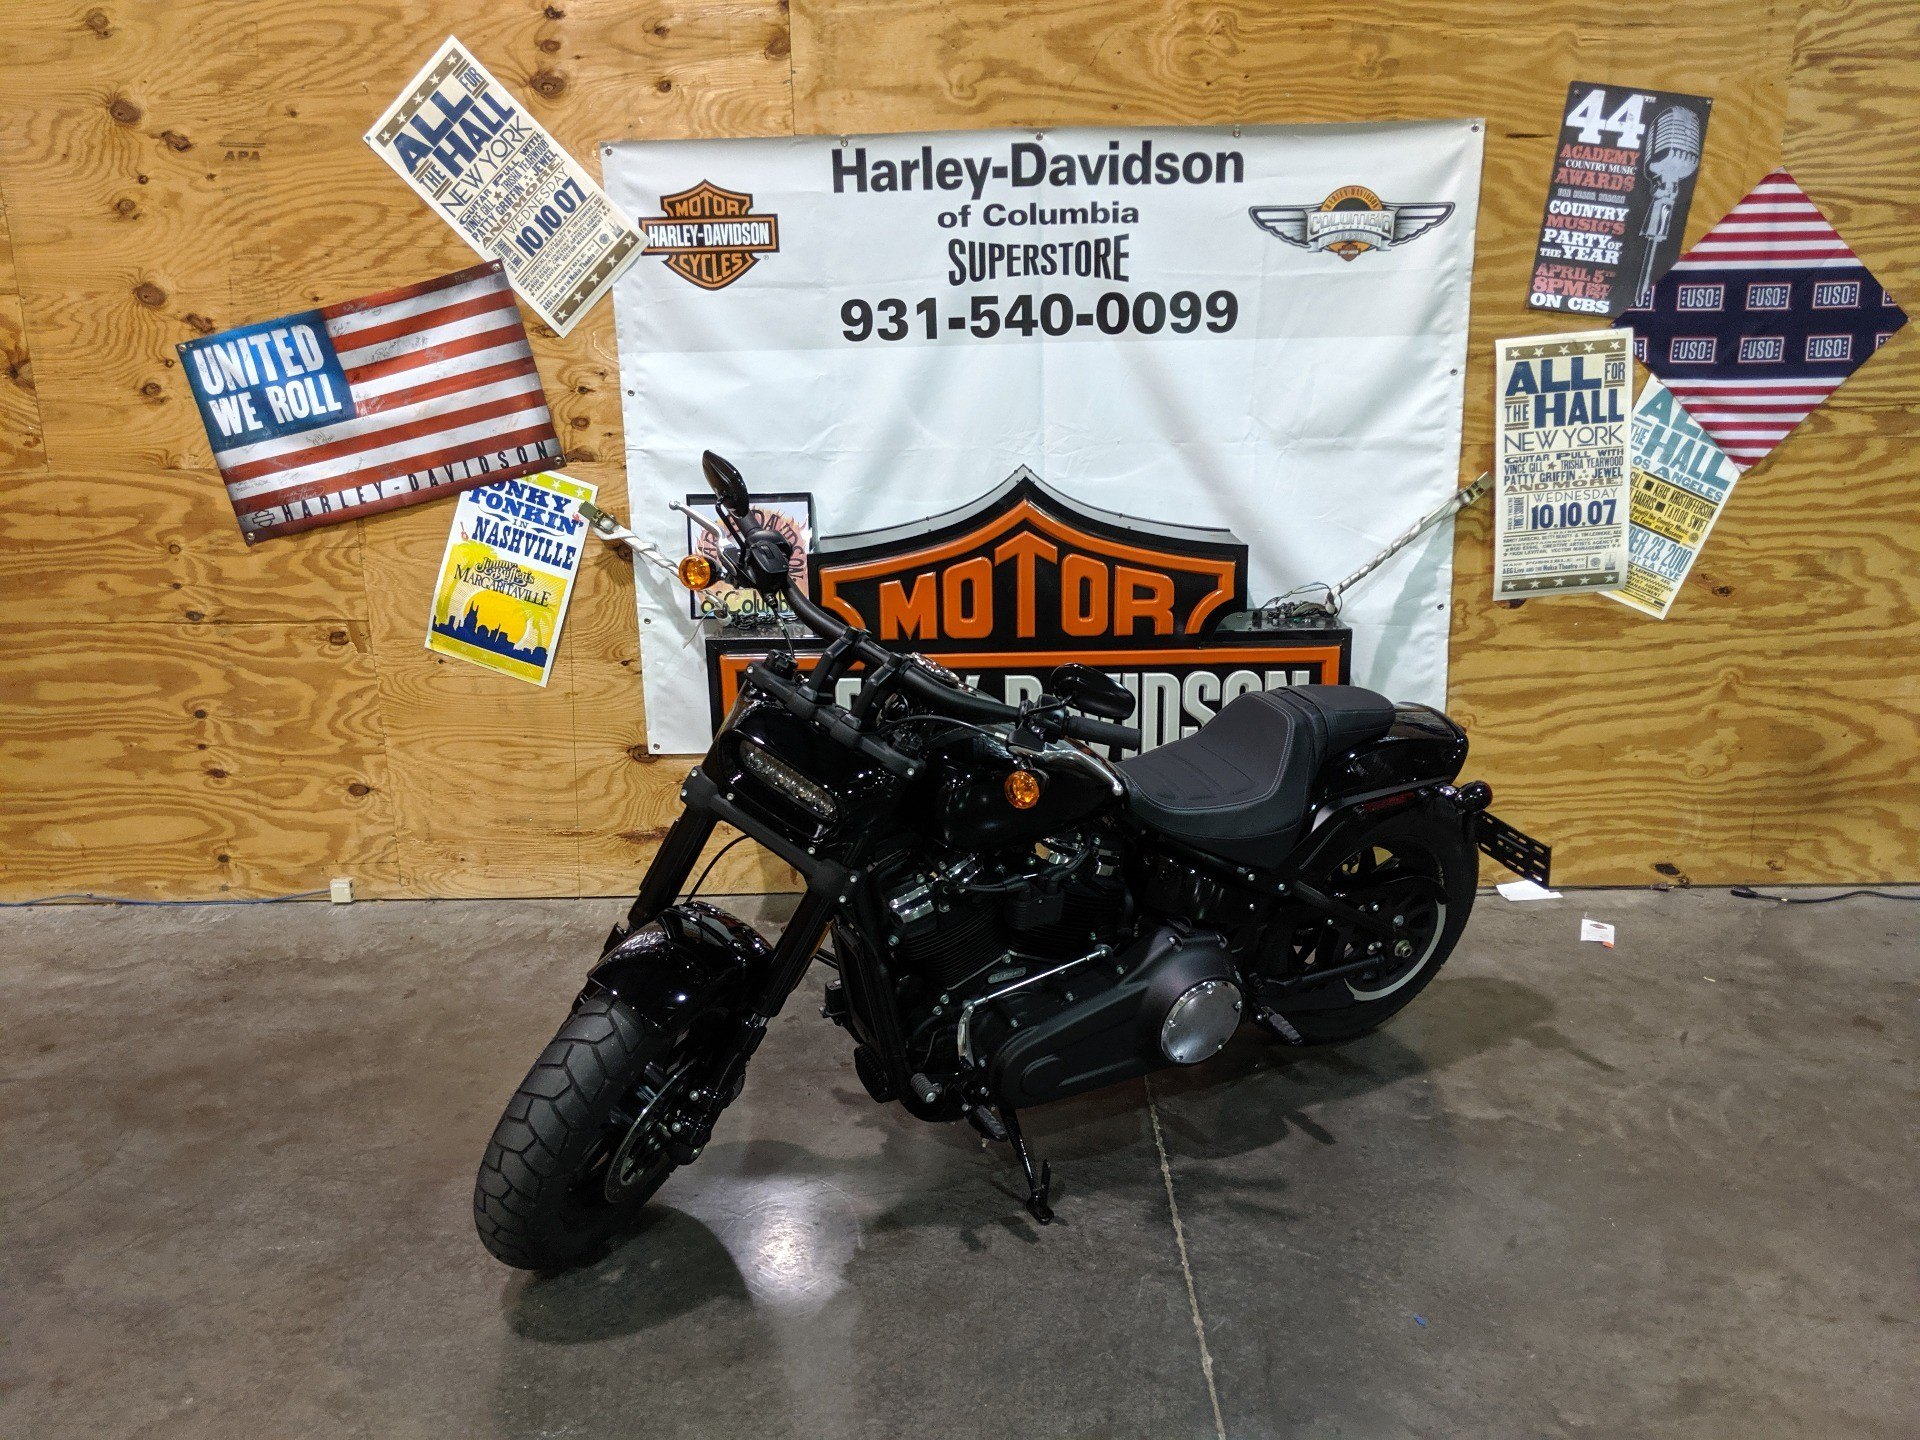 2018 Harley-Davidson FXFB in Columbia, Tennessee - Photo 4